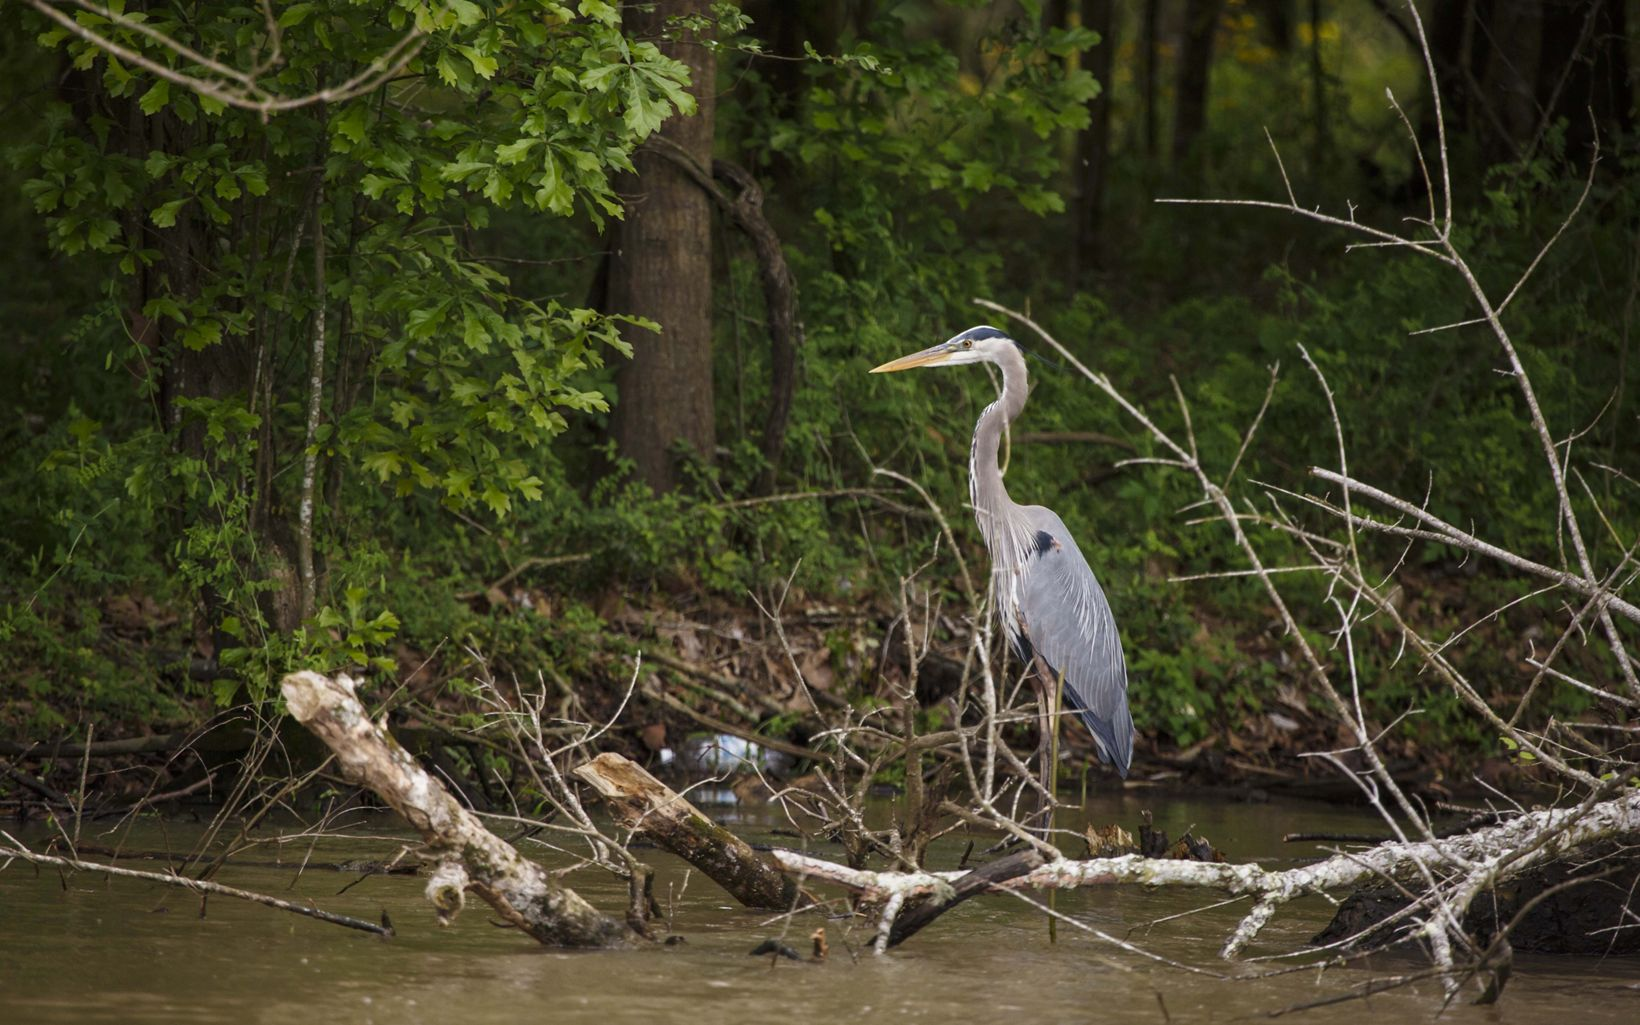 A Great Blue Heron in the Atchafalaya River Basin